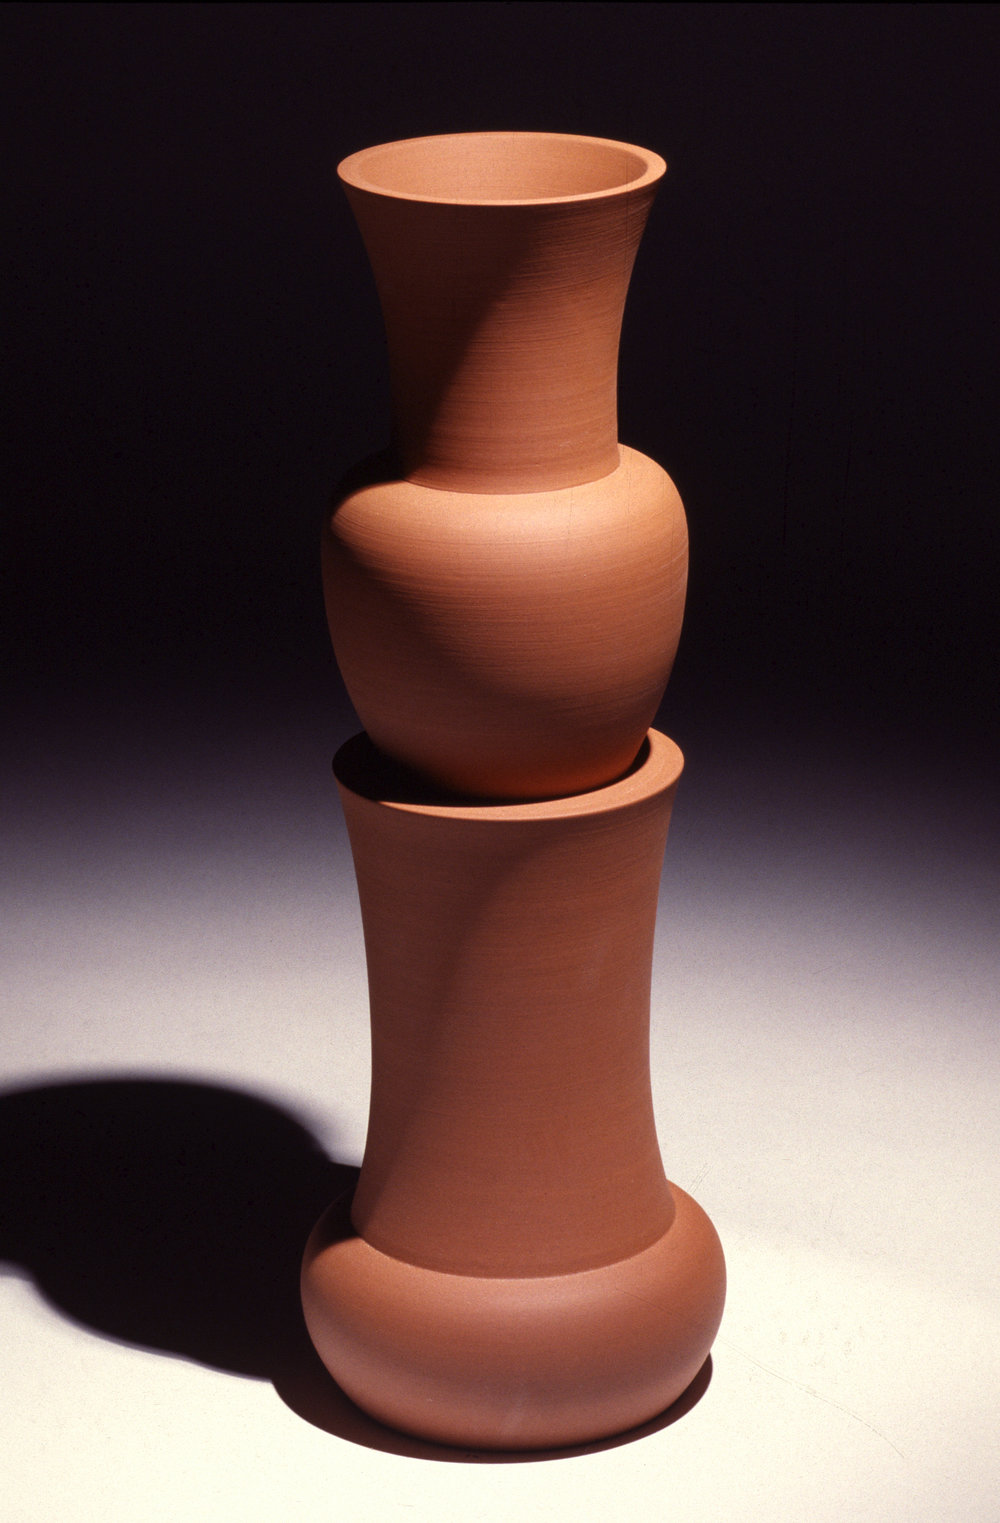 Sarri_photos_Clayvase4.jpg